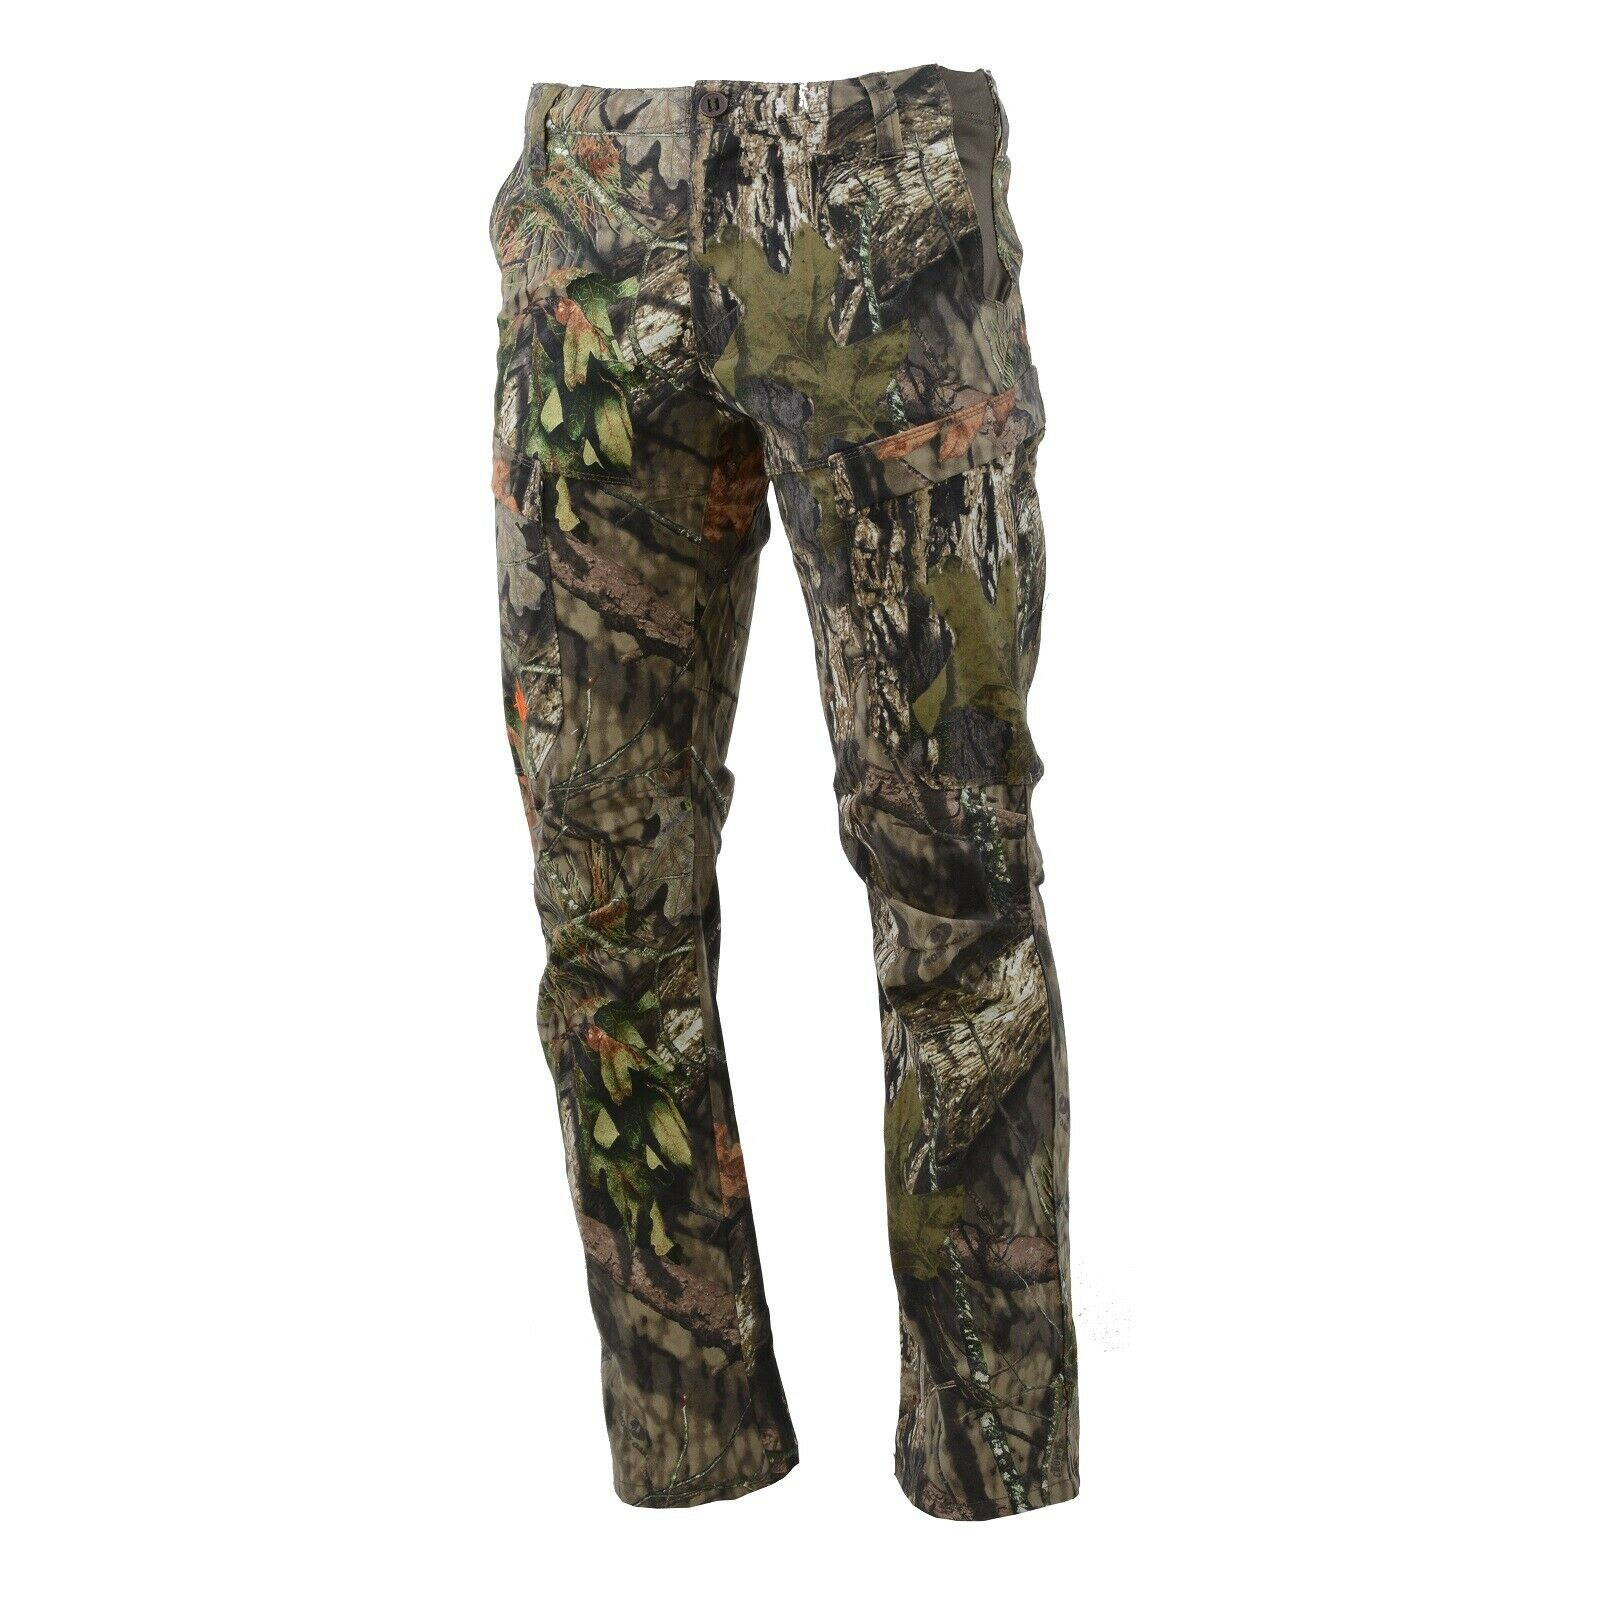 Nomad Men's Bloodtrail  Camo Hunting Pant N2000060  top brand